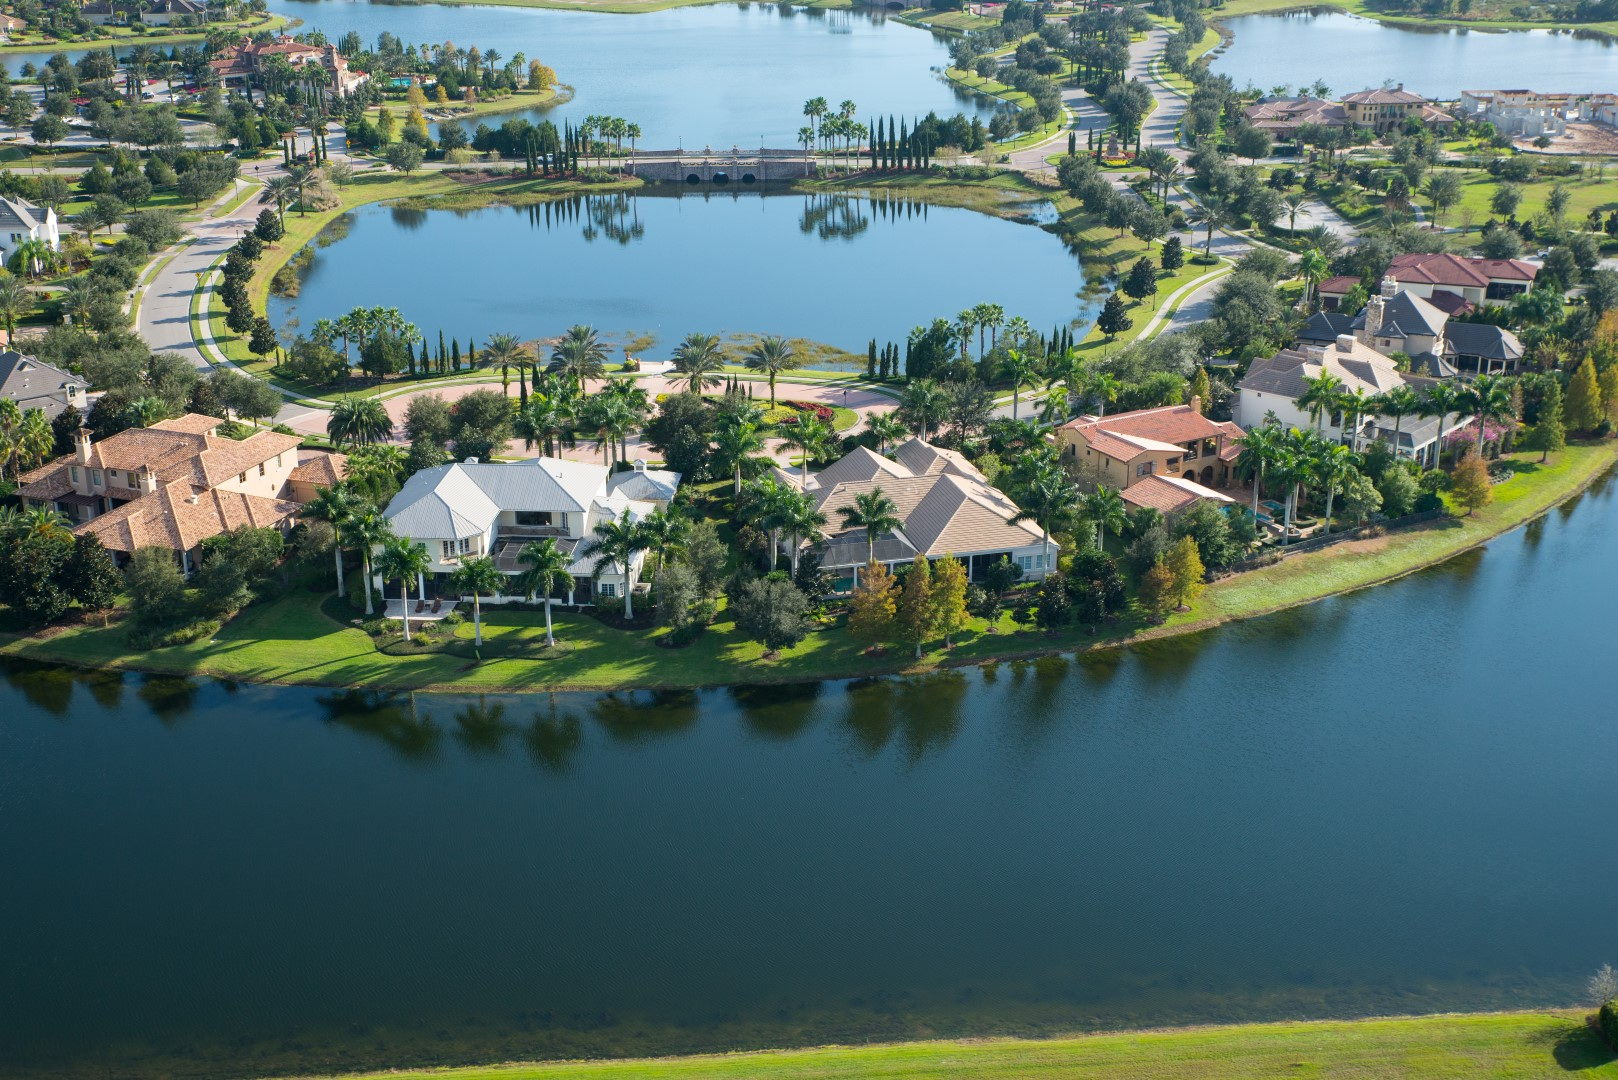 Read More about The Landings on Skidaway Island - Savannah's Choice for Island Living